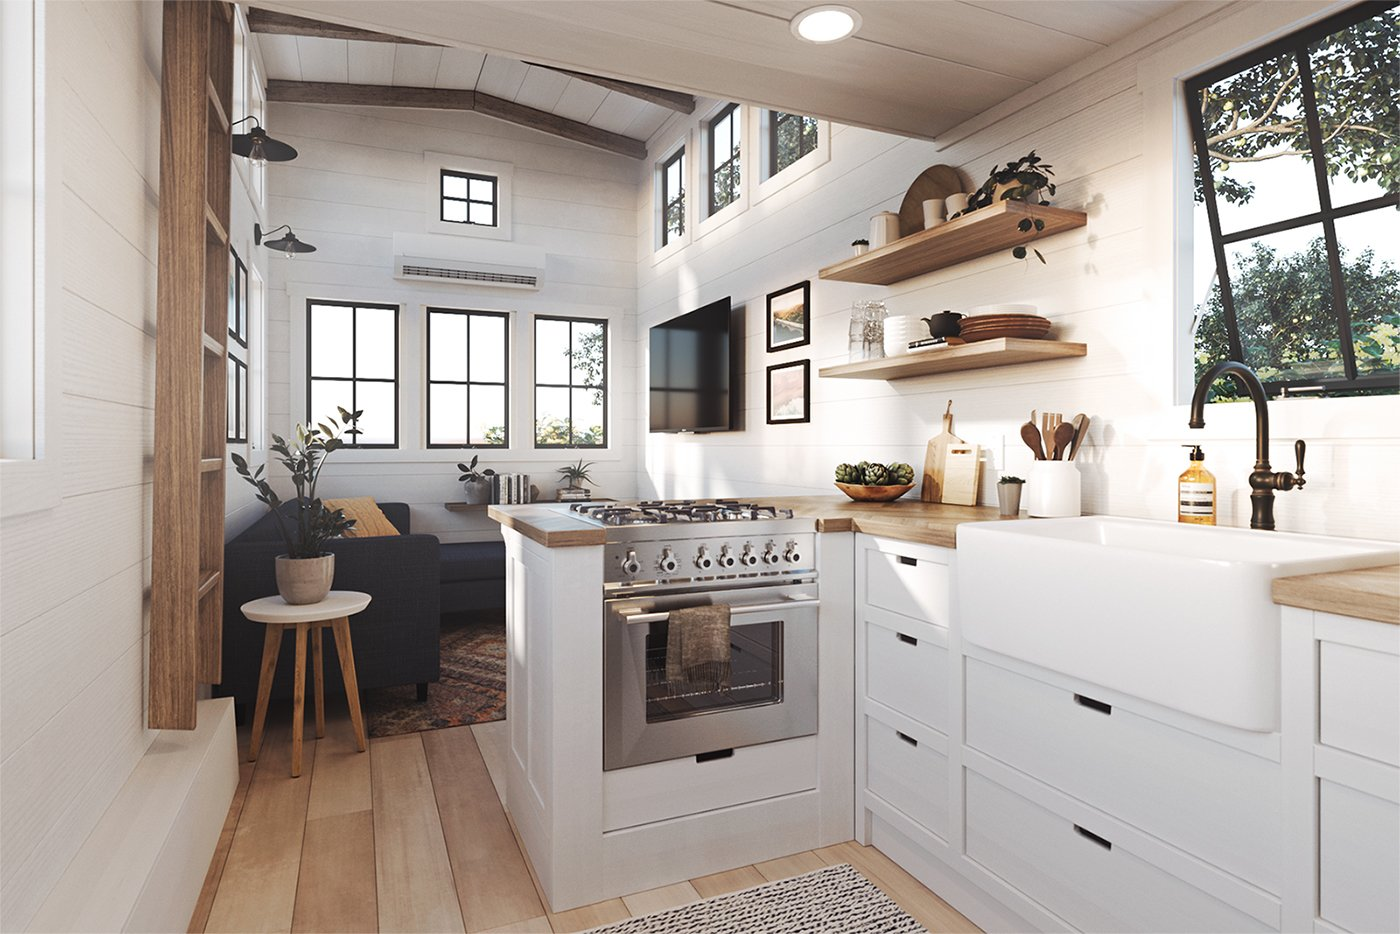 Cushty Tiny House Companies That Can Make Your Dreams Come True Tiny House Companies That Can Make Your Dreams Come Timbercraft Tiny Homes Denali Xl Sale Timbercraft Tiny Homes Instagram houzz-02 Timbercraft Tiny Homes